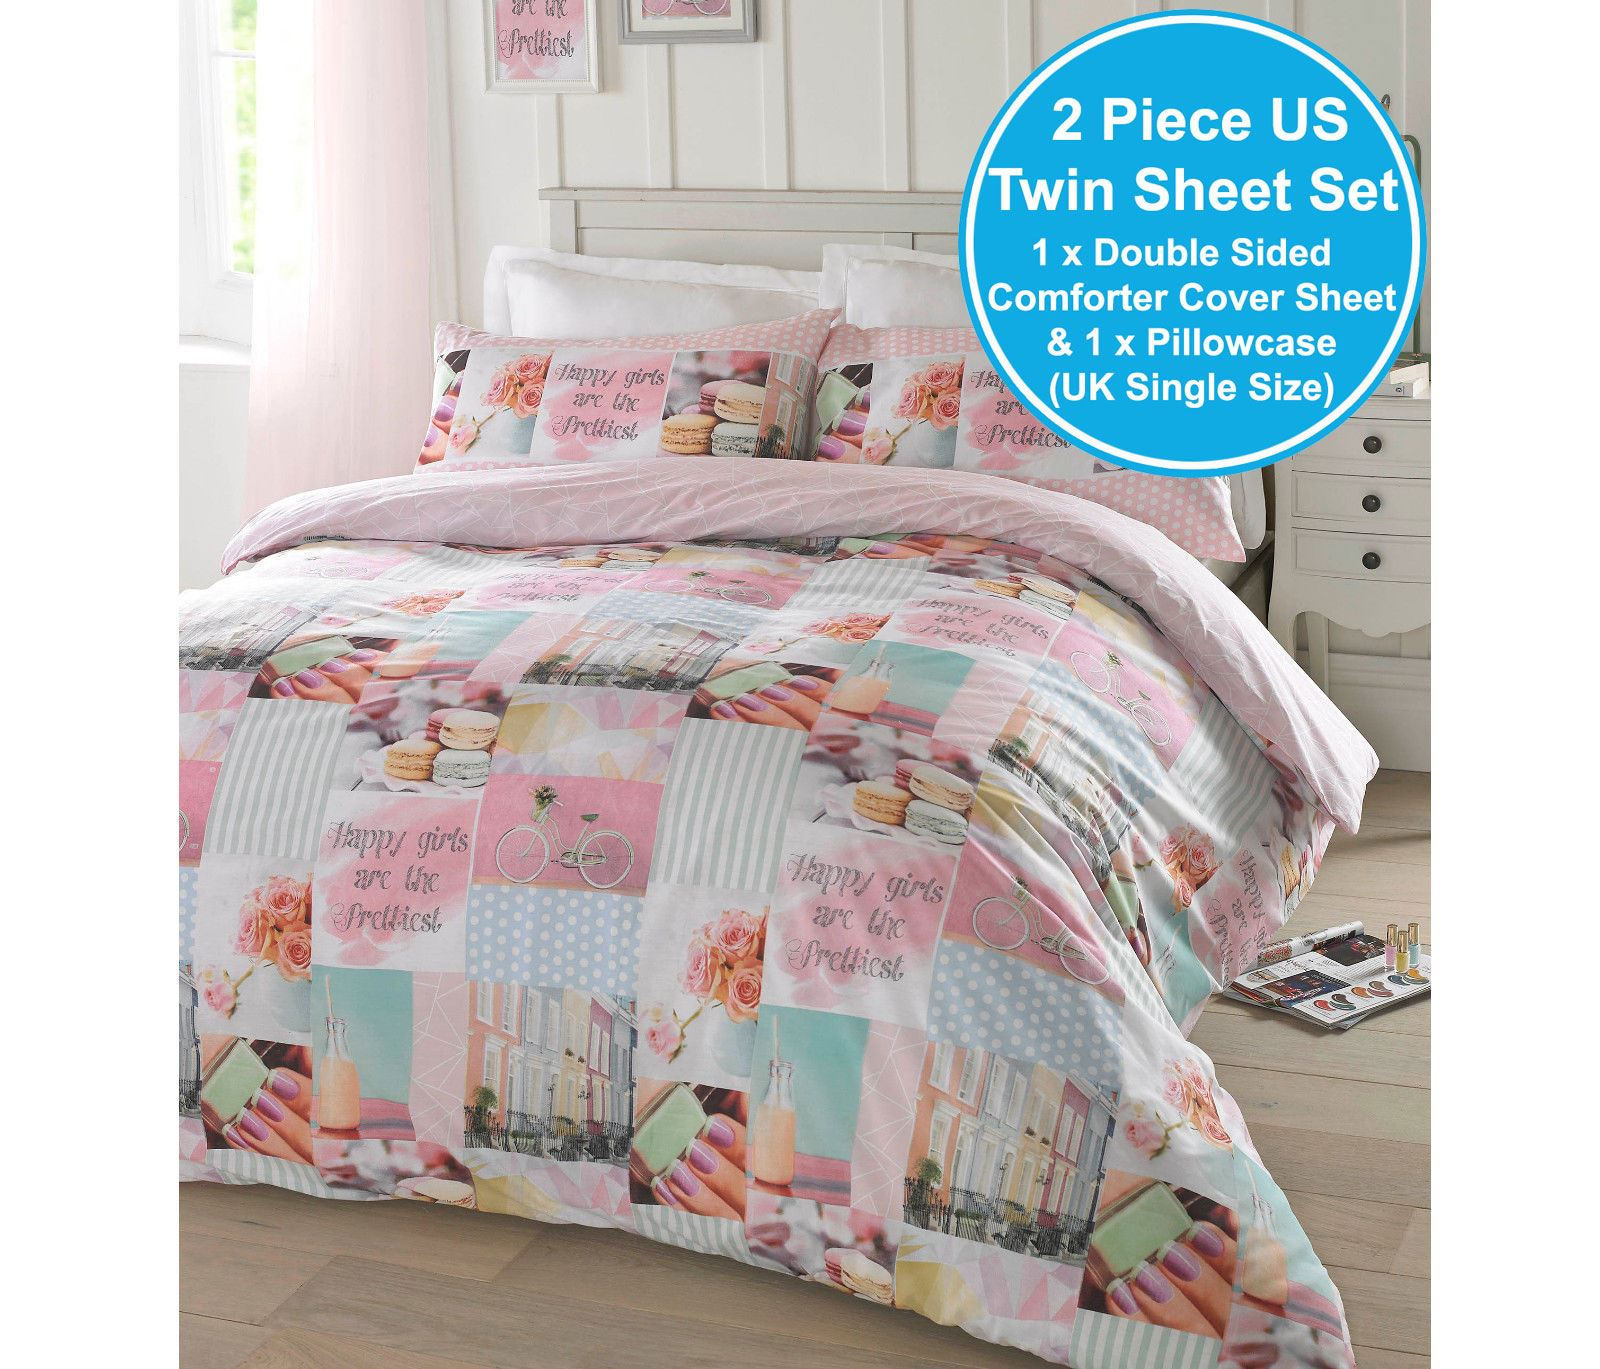 Grace Edredón Duvet cover set con funda de almohada Tamaño Individual Doble King Super